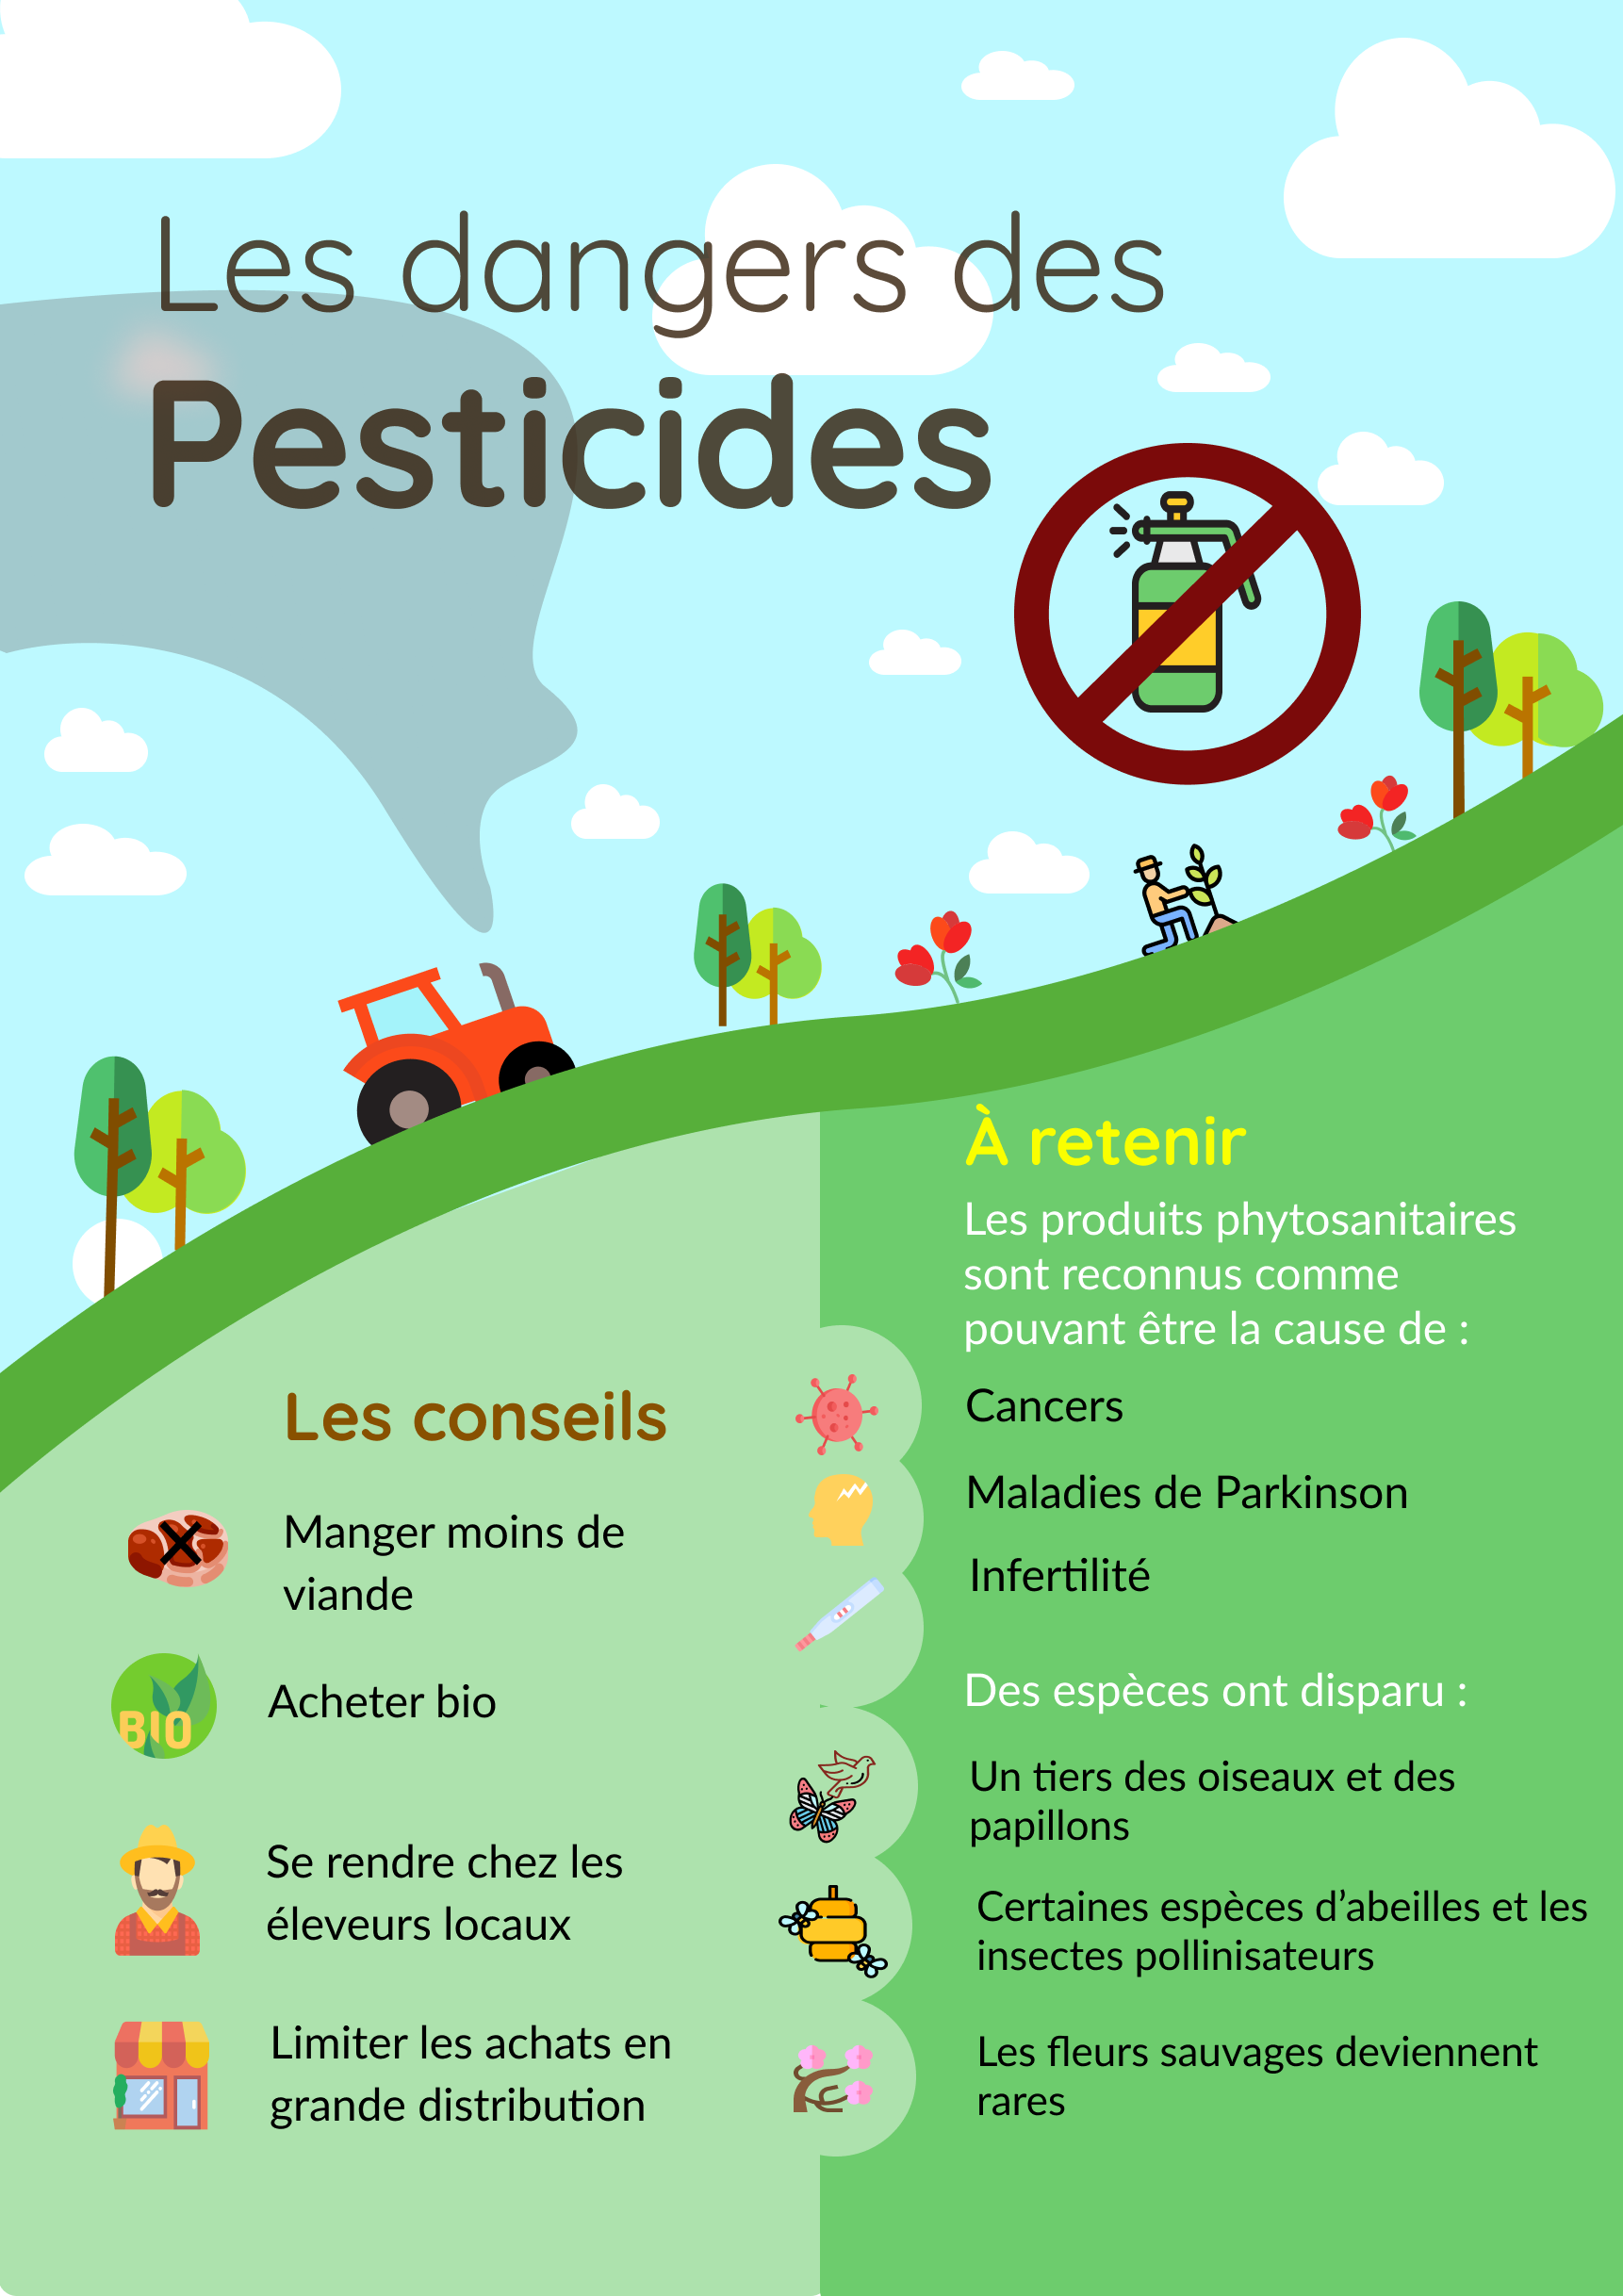 Les dangers des pesticides